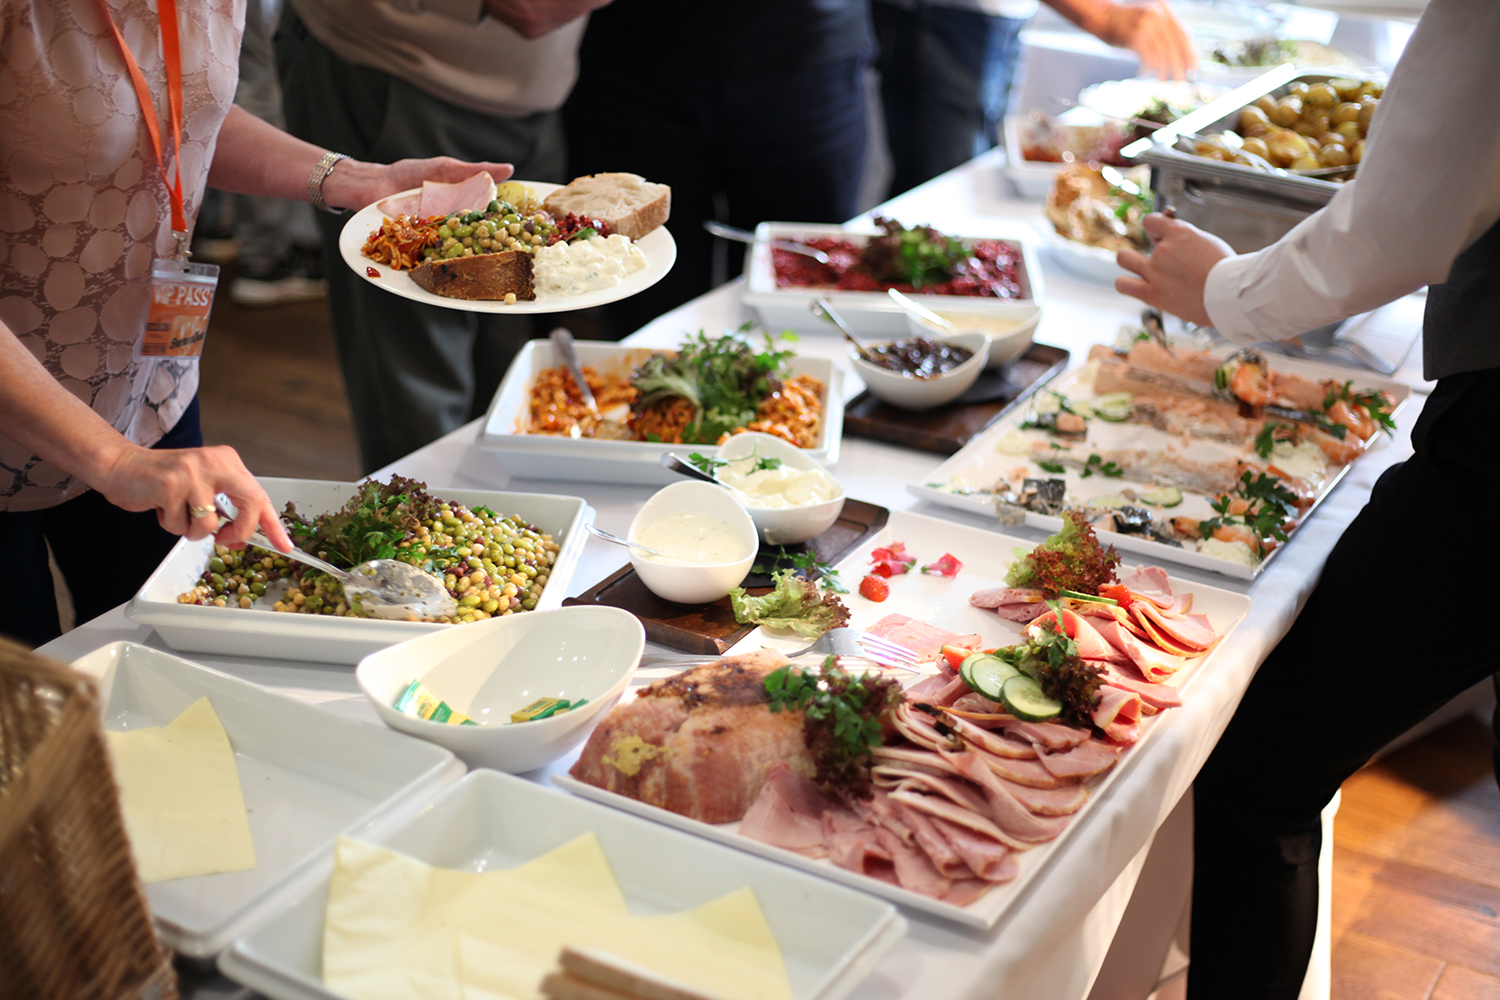 Food & Drink to suit you - Whether you require coffee & cake, pie & peas or a delicious 3-course meal - we can provide refreshments and catering to suit your event and budget.